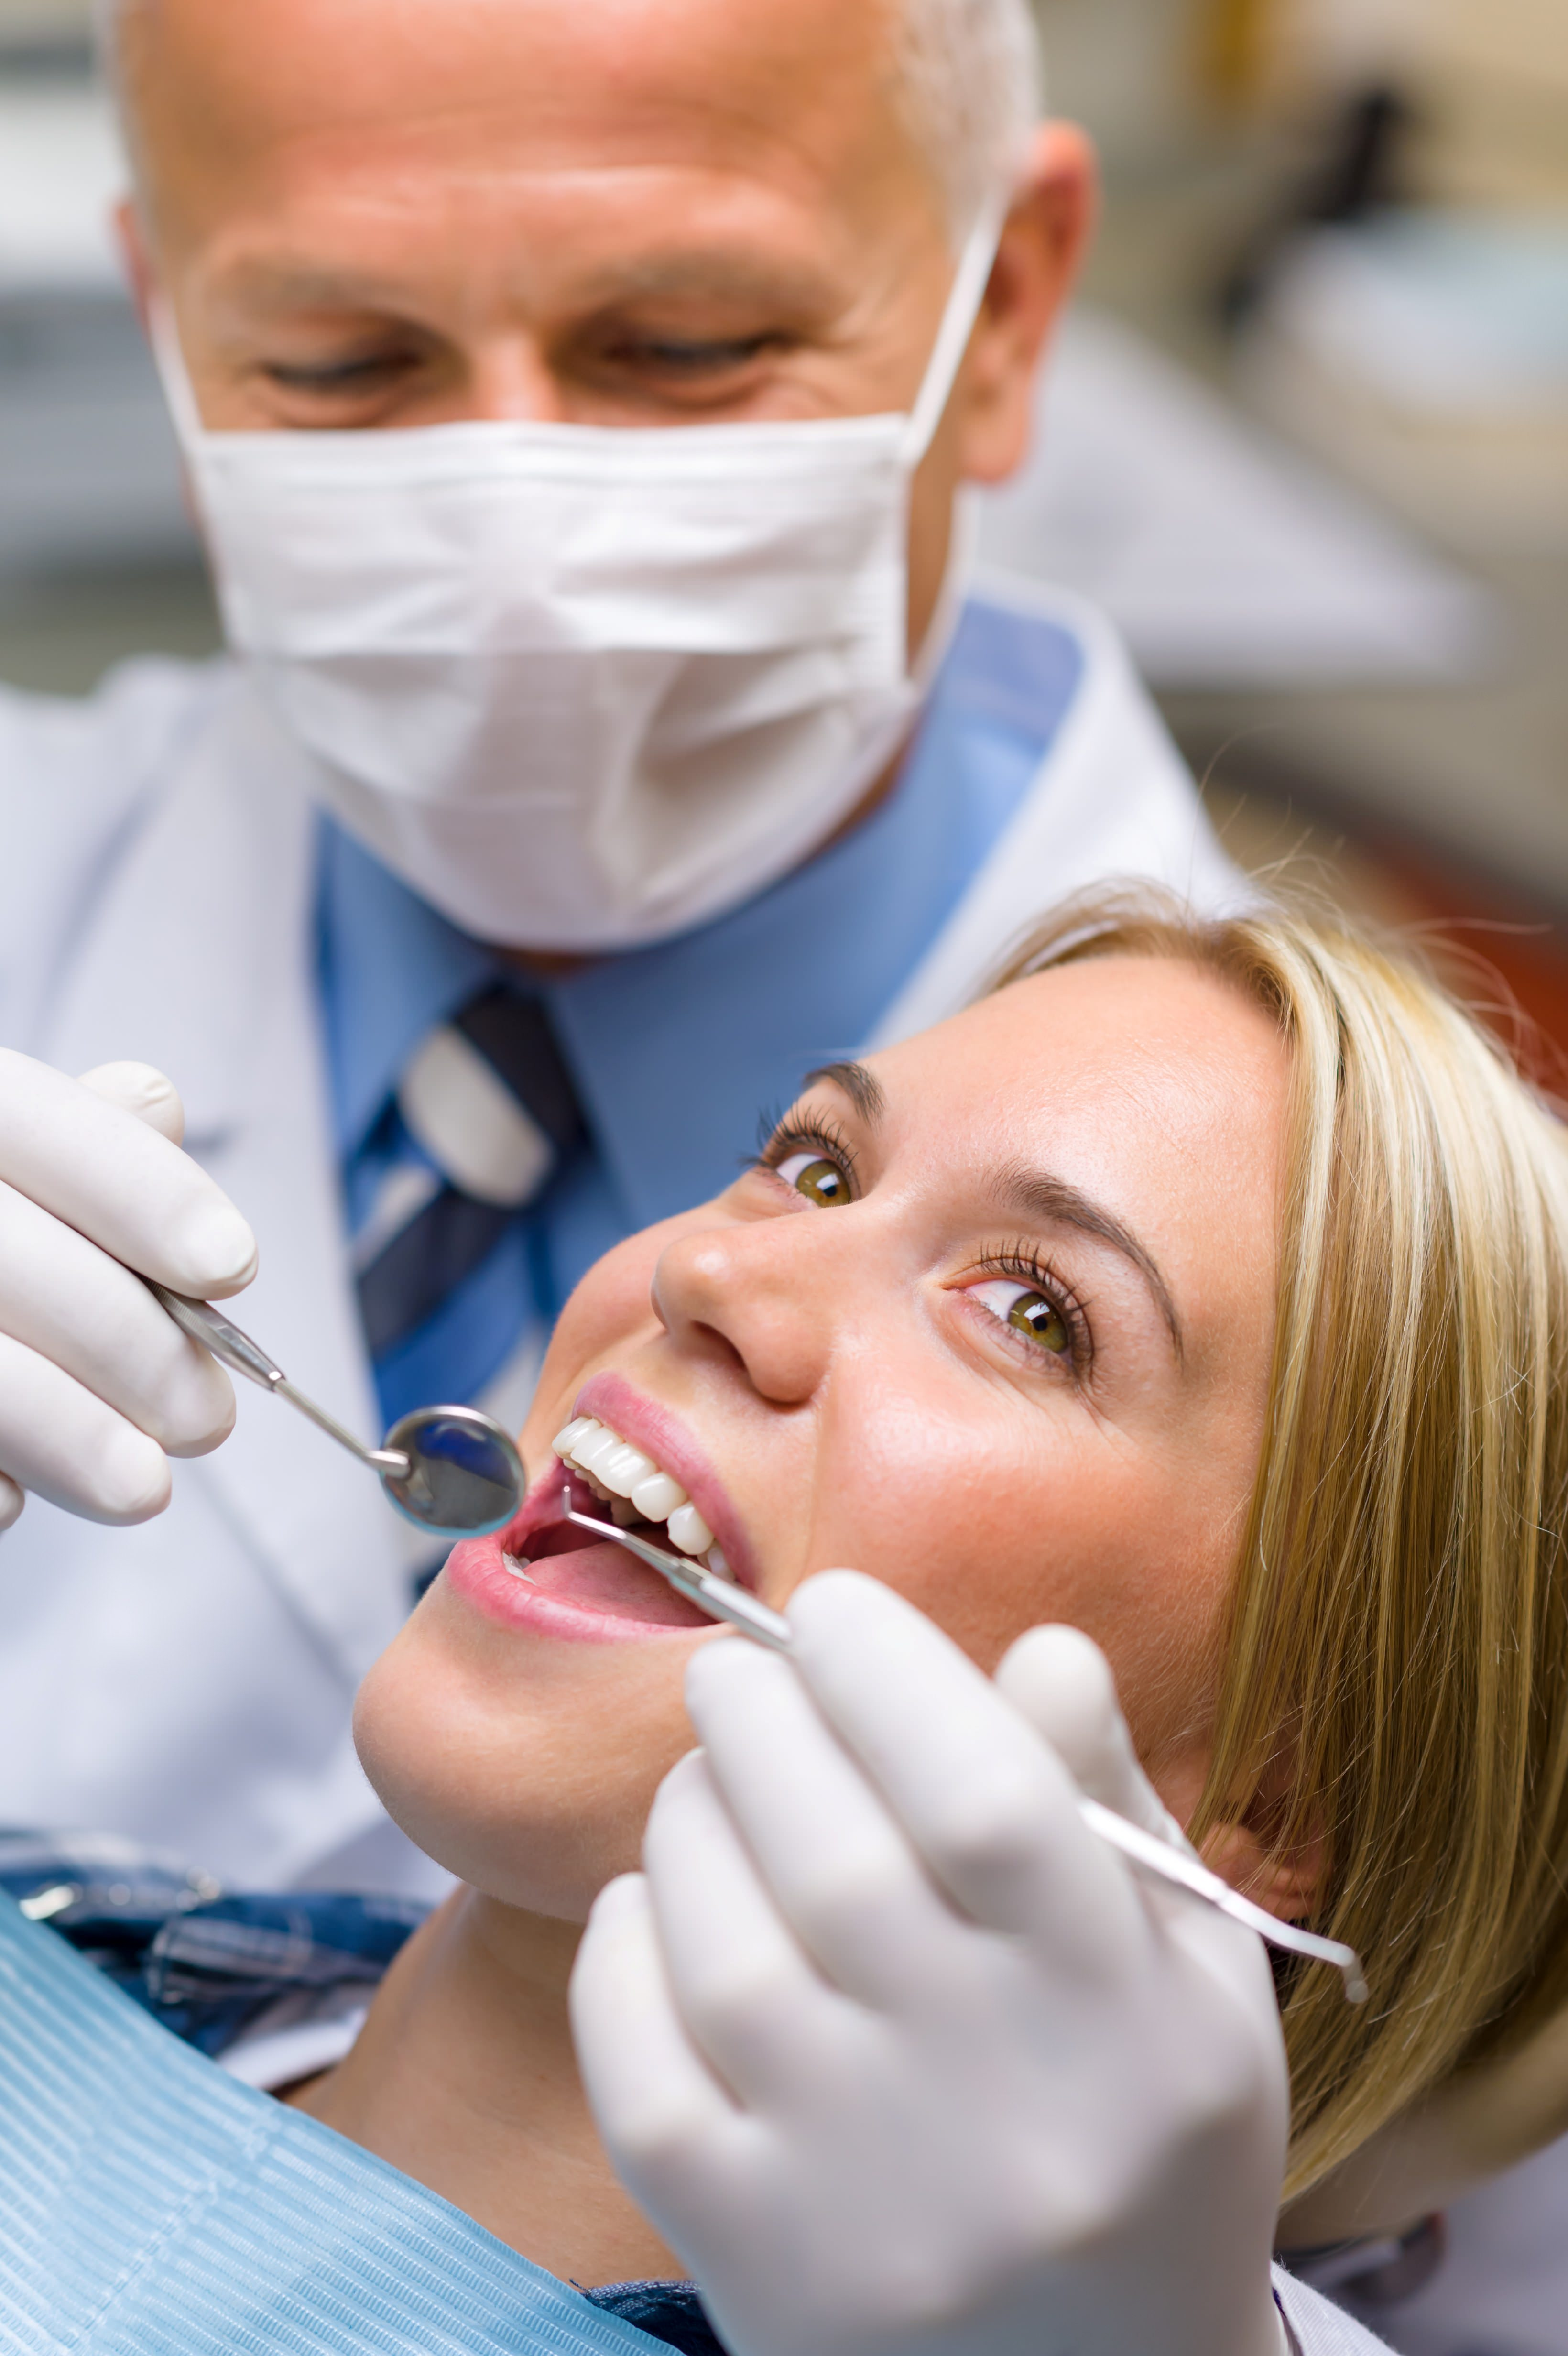 How Are Braces Put On Your Teeth? - How Long Does it Take ...